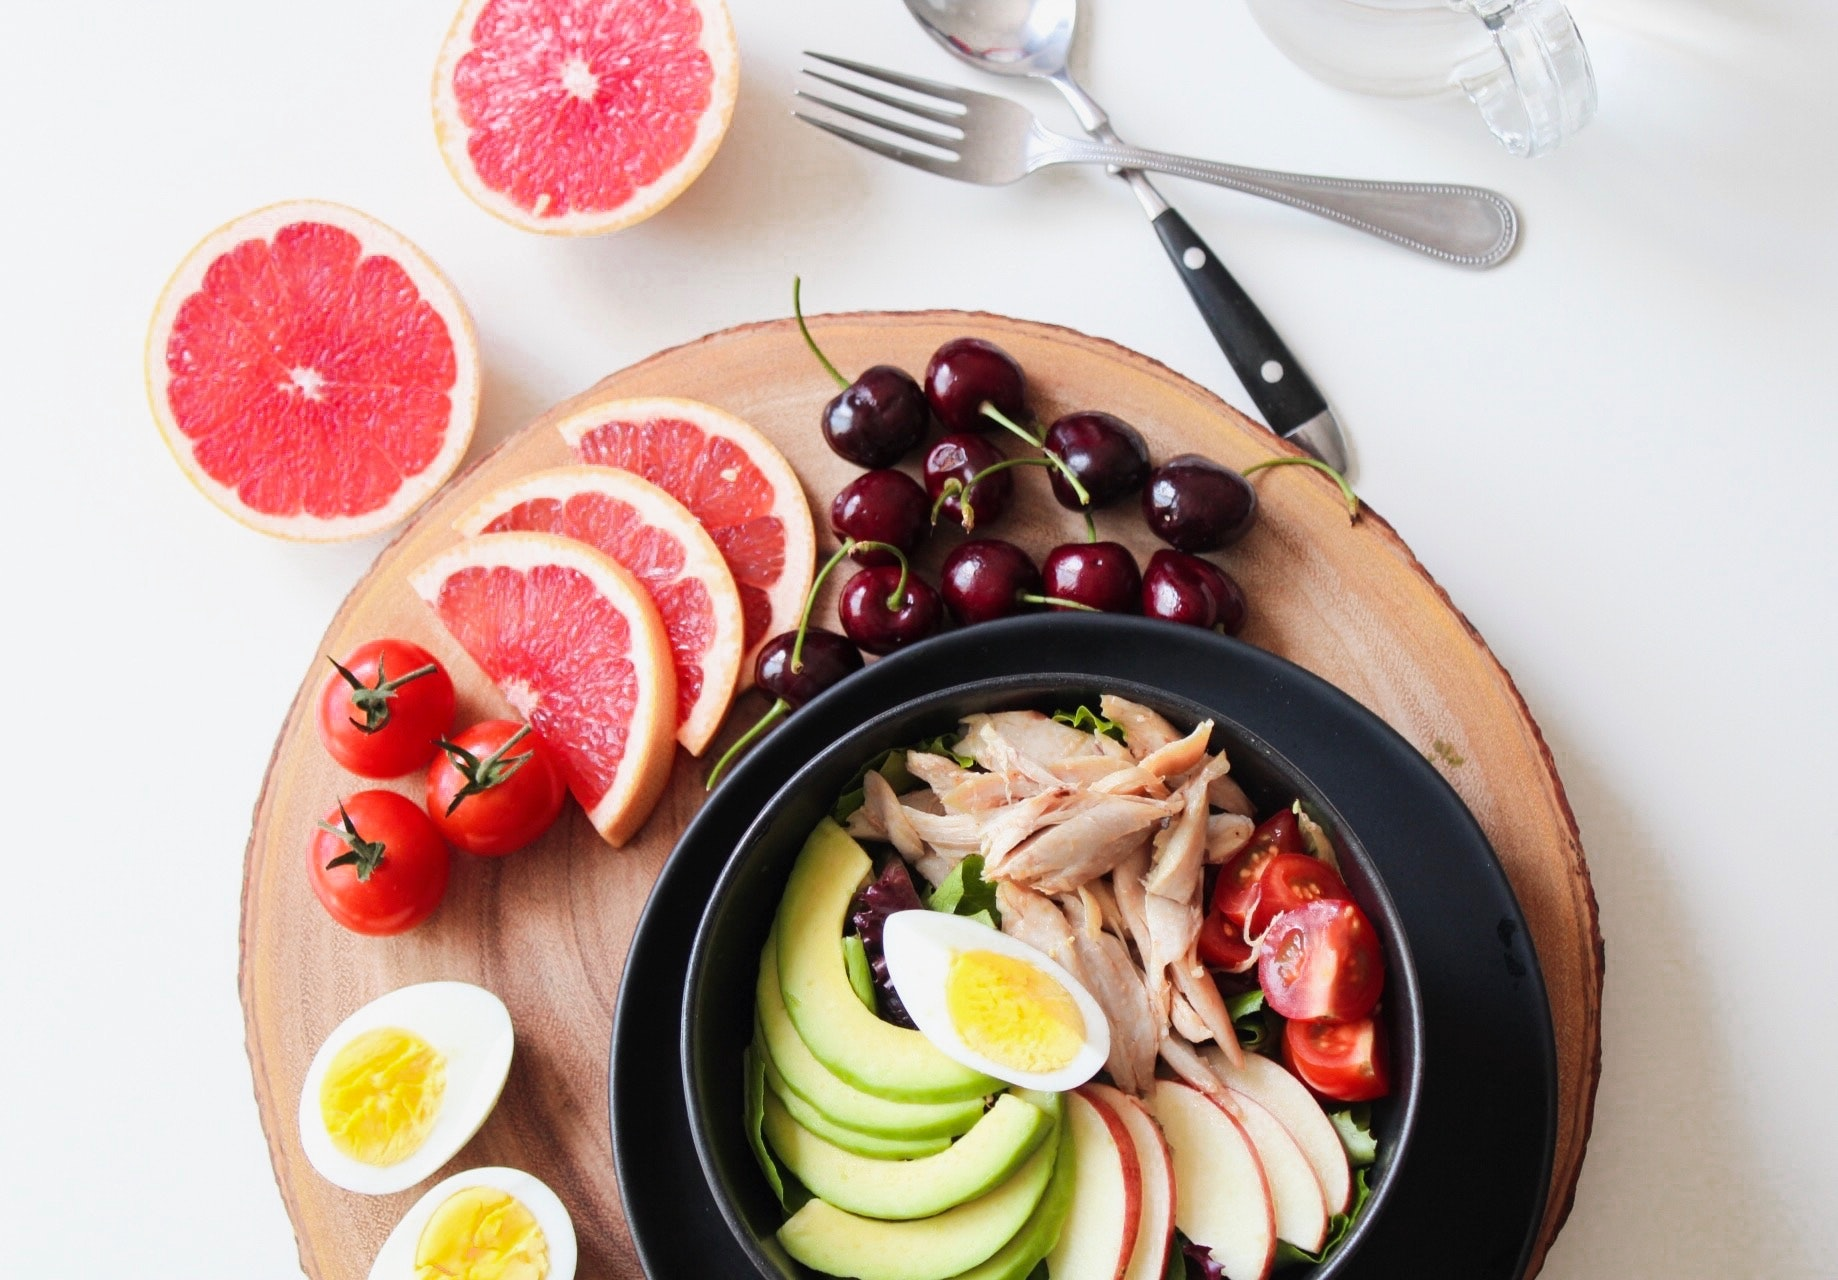 Bowl of vegetable salad and fruits photo